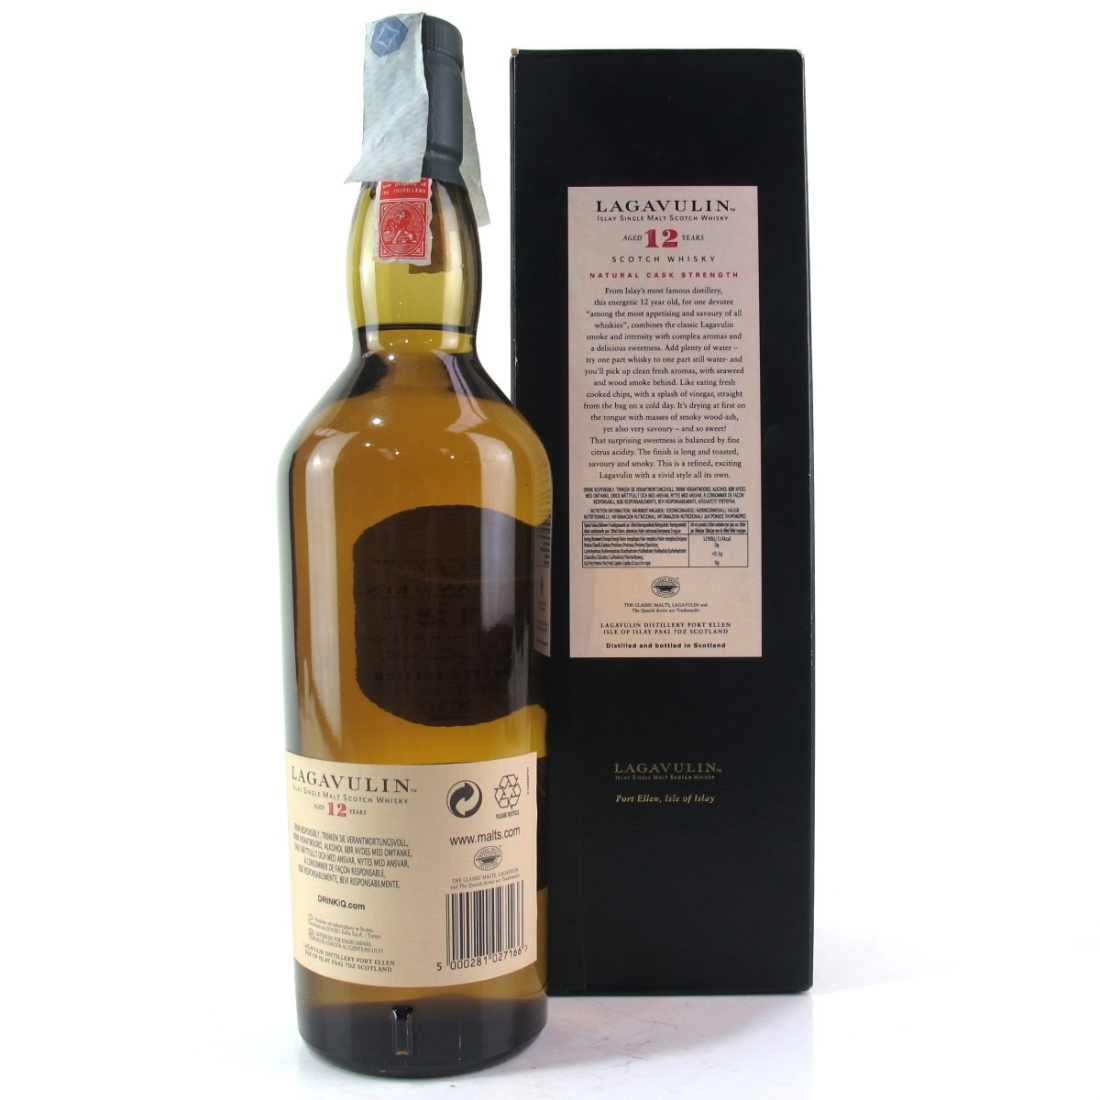 Lagavulin 12 Year Old 2010 Release